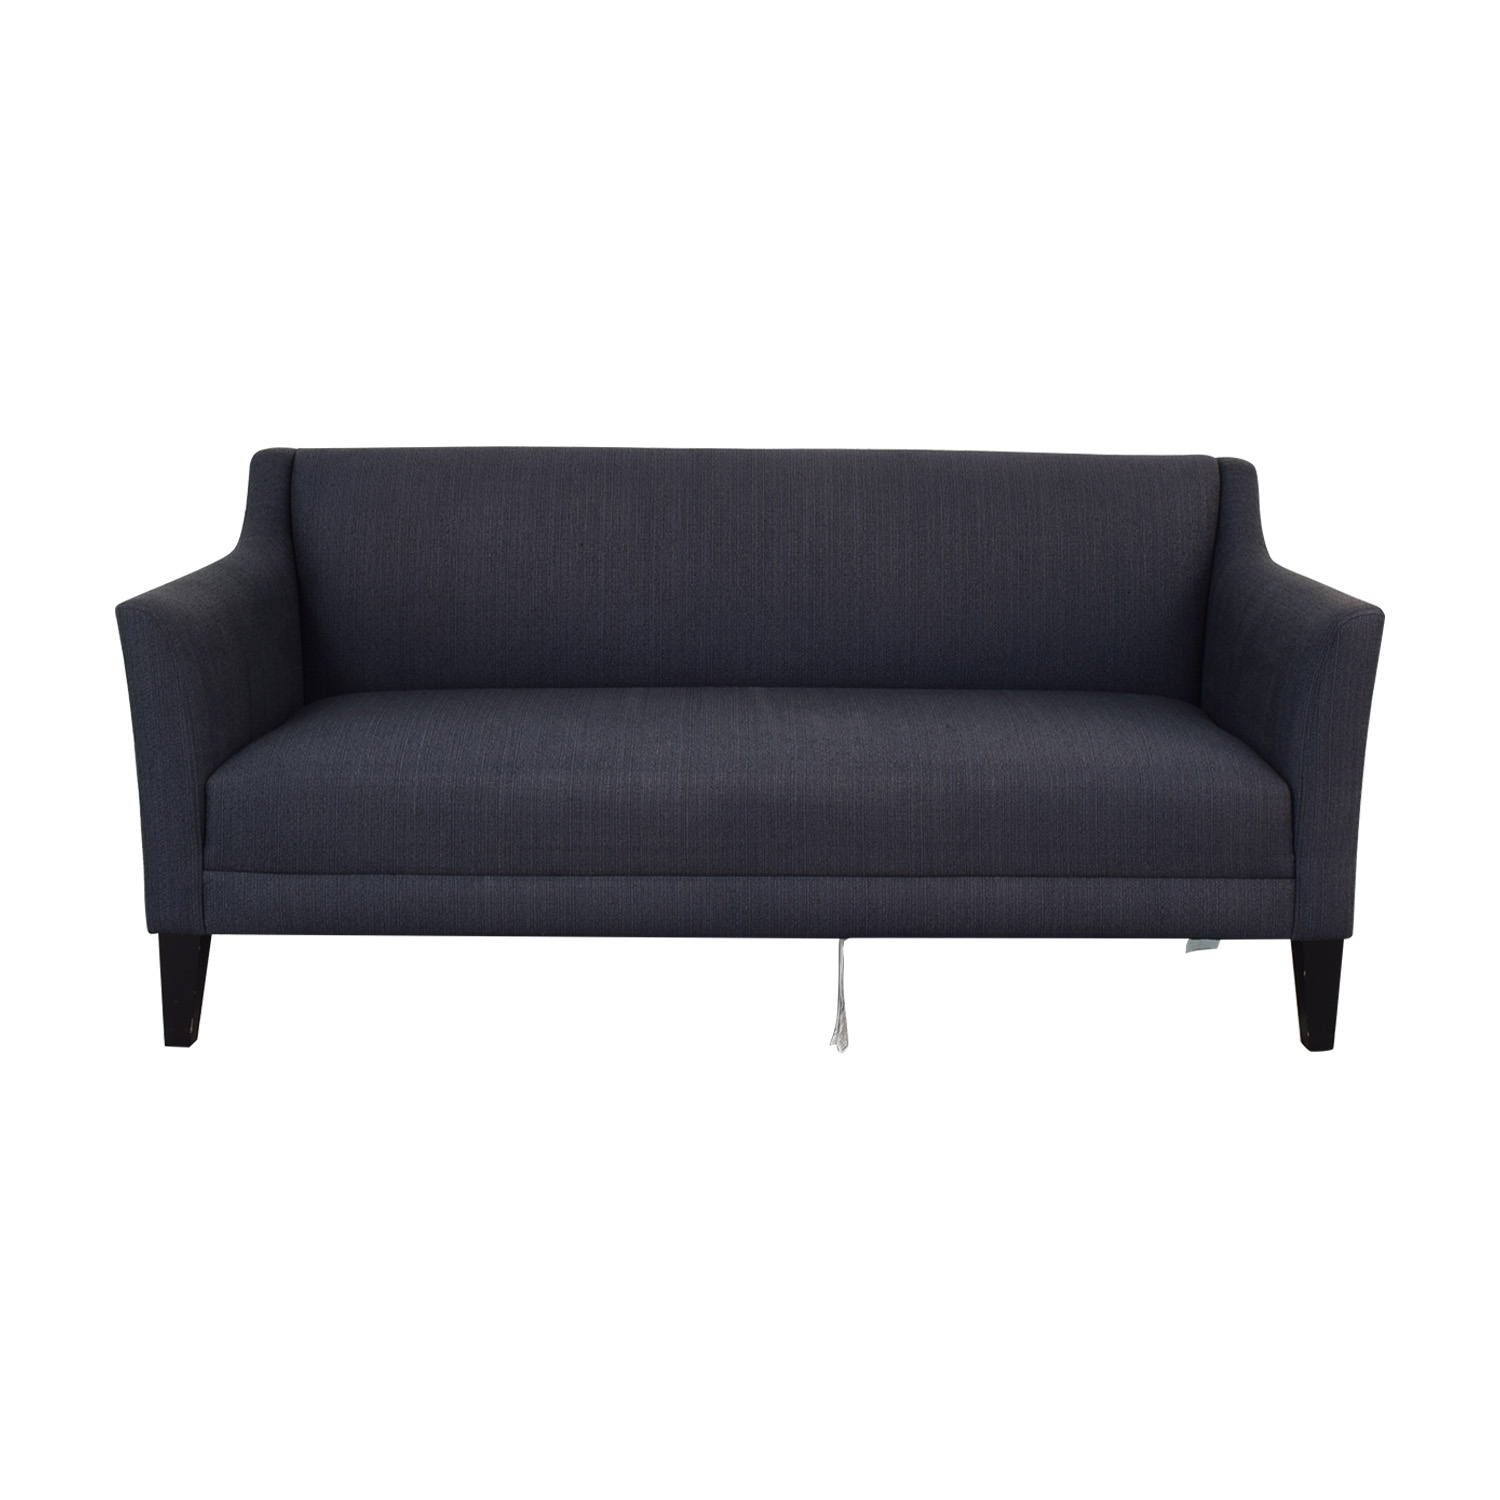 Crate & Barrel Crate & Barrel Margot II Blue Sofa coupon